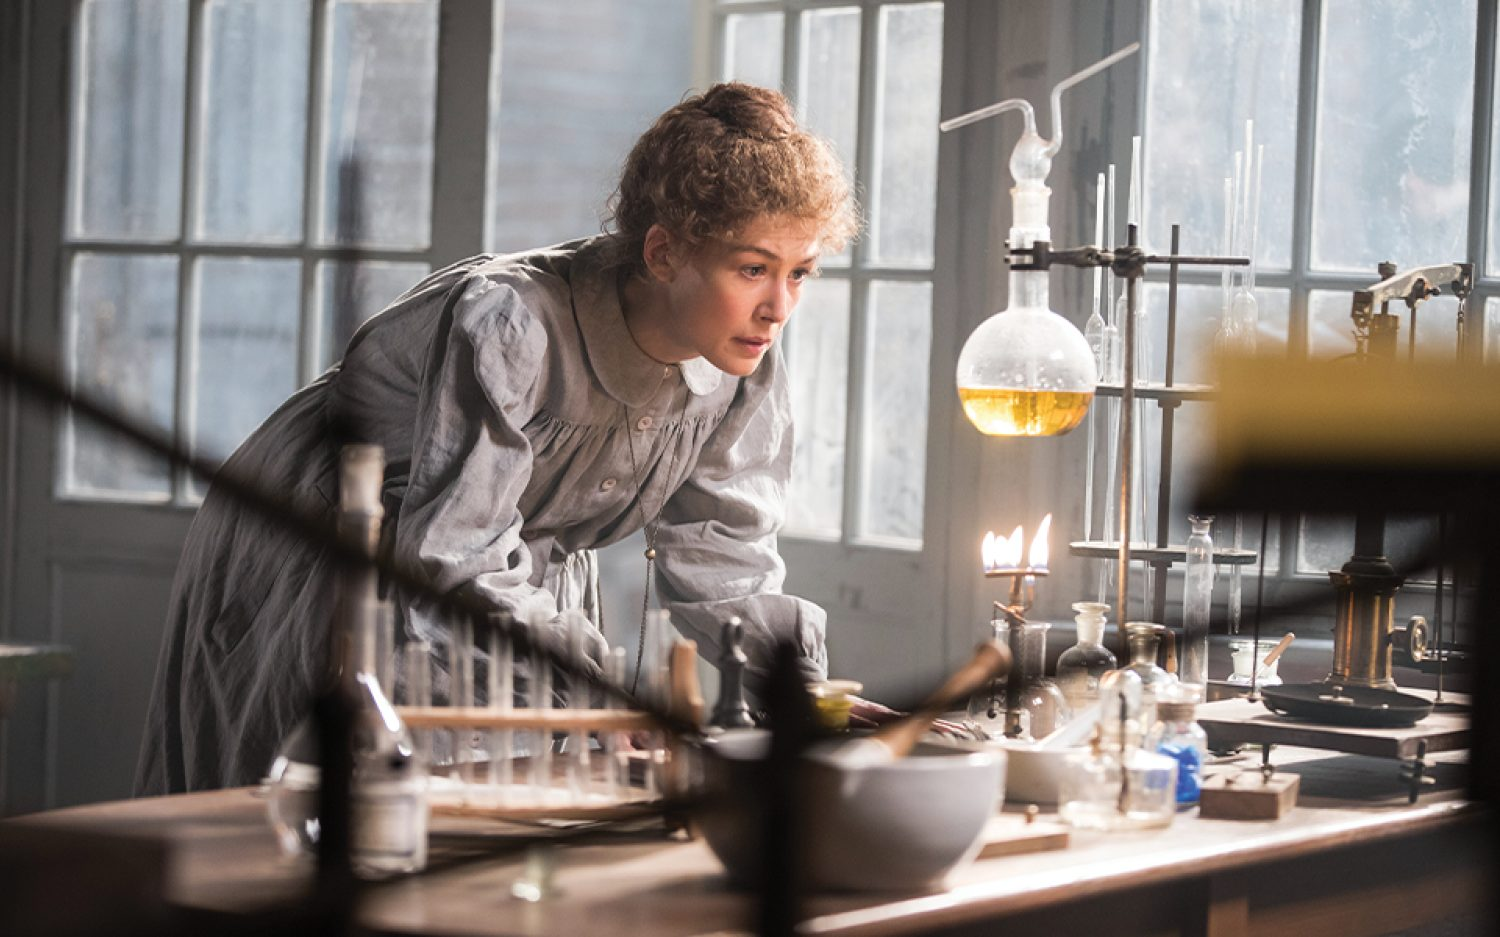 Marie Curie is out of her element in <em>Radioactive</em>